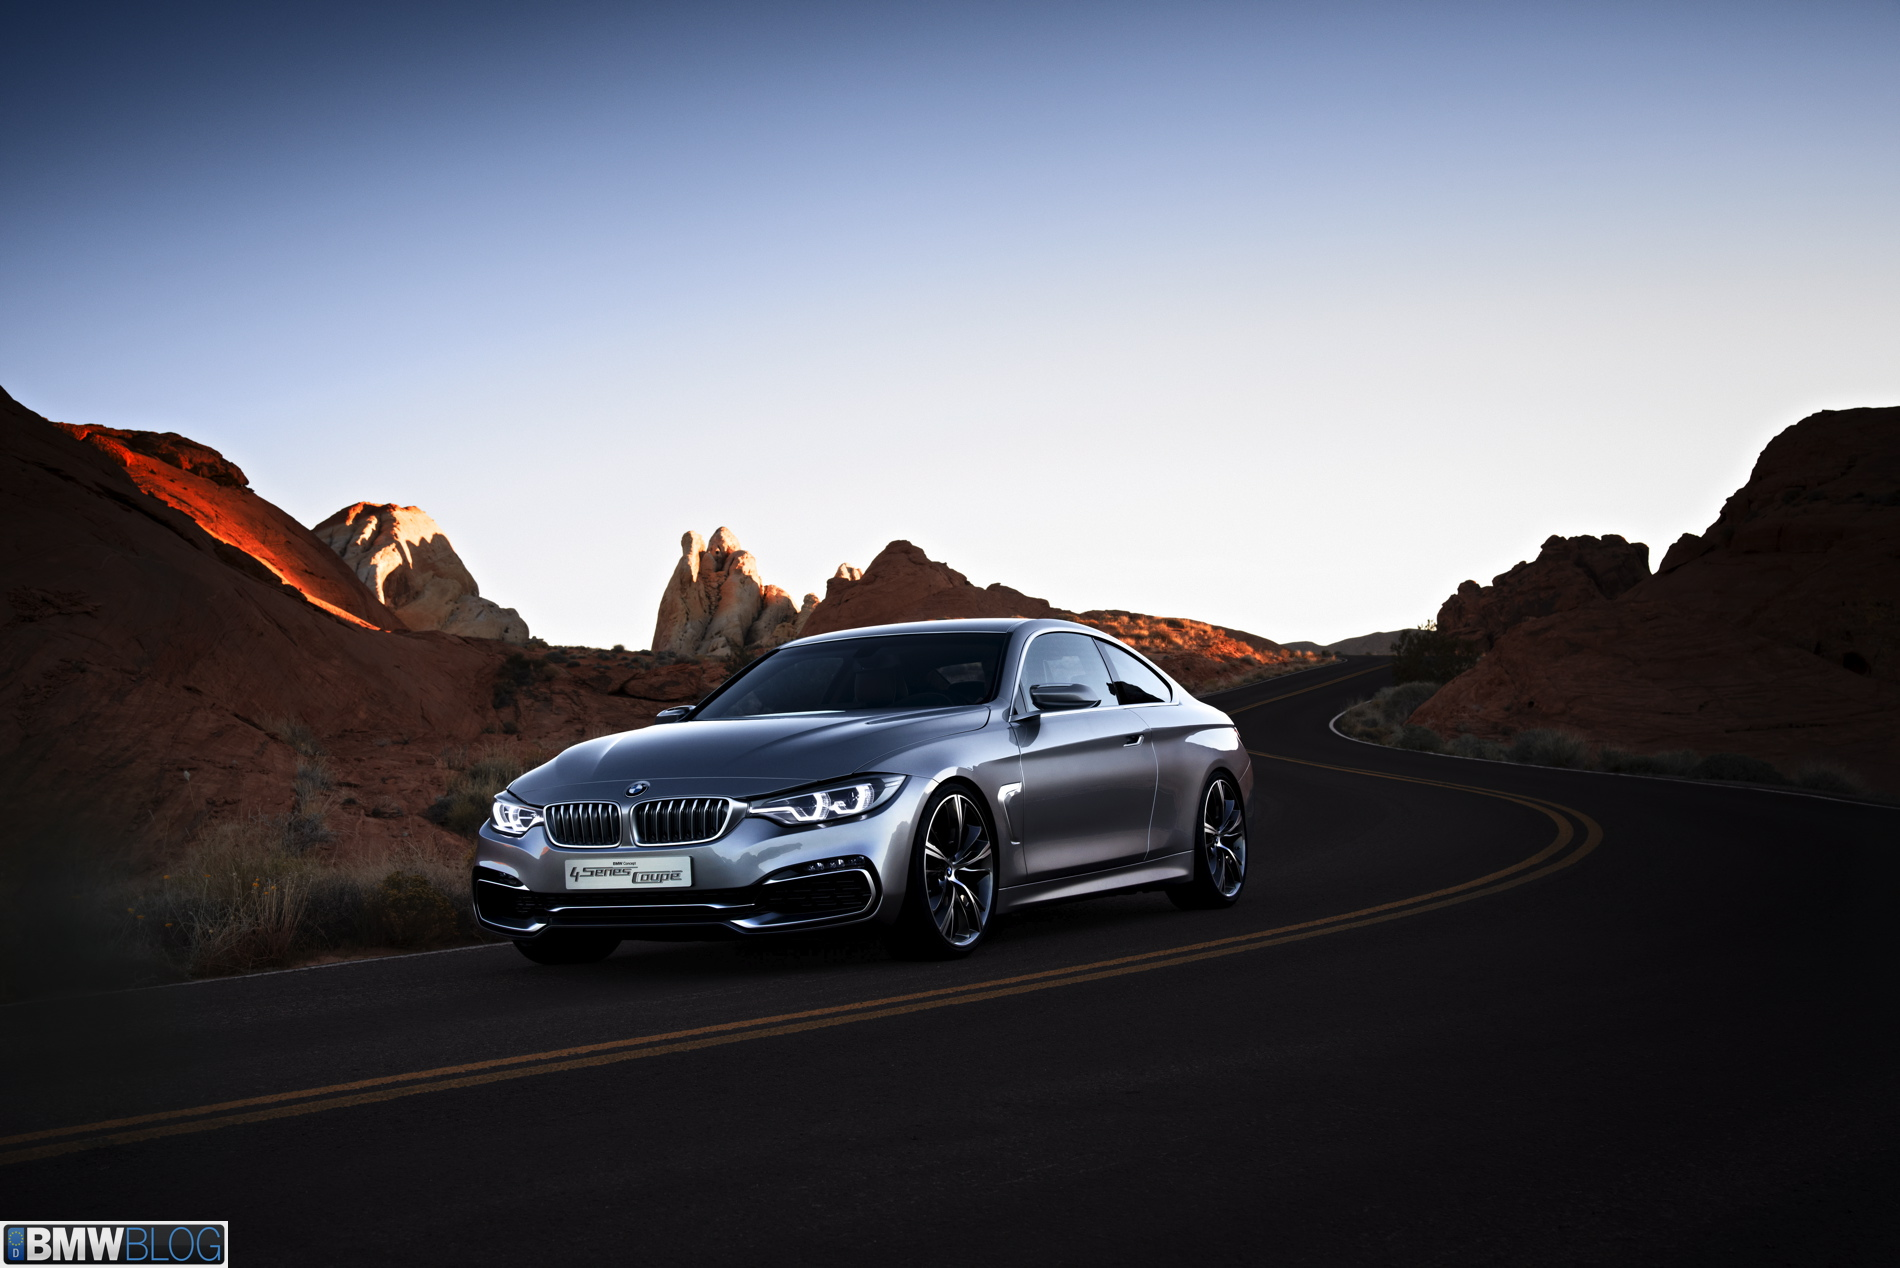 BMW 4 series images 0621